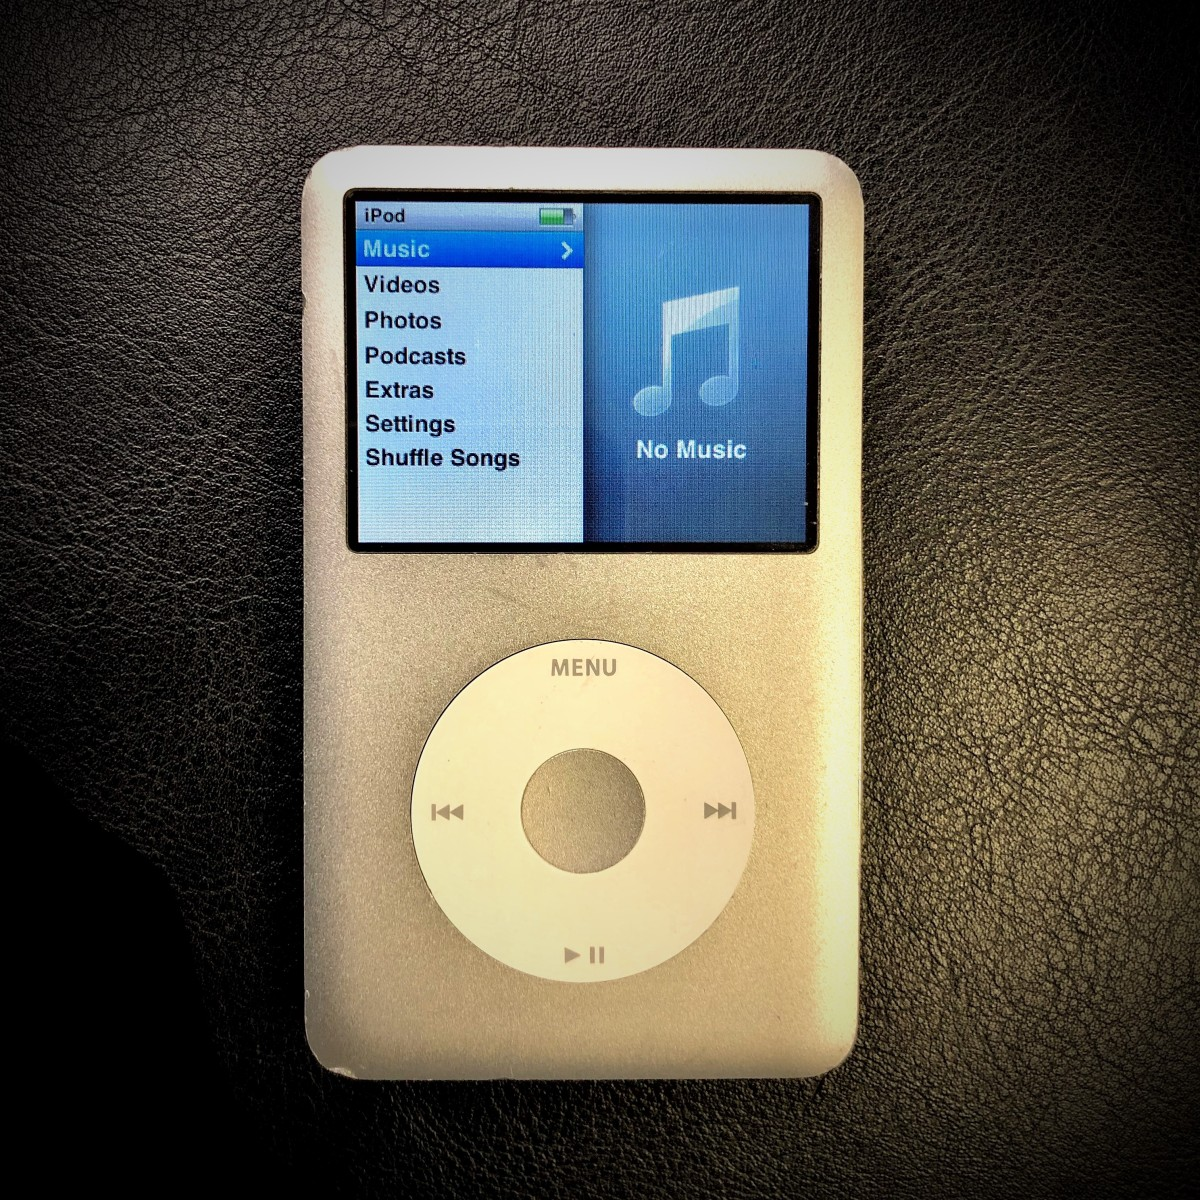 Apple iPod Classic – 6th Gen (Rev 2)